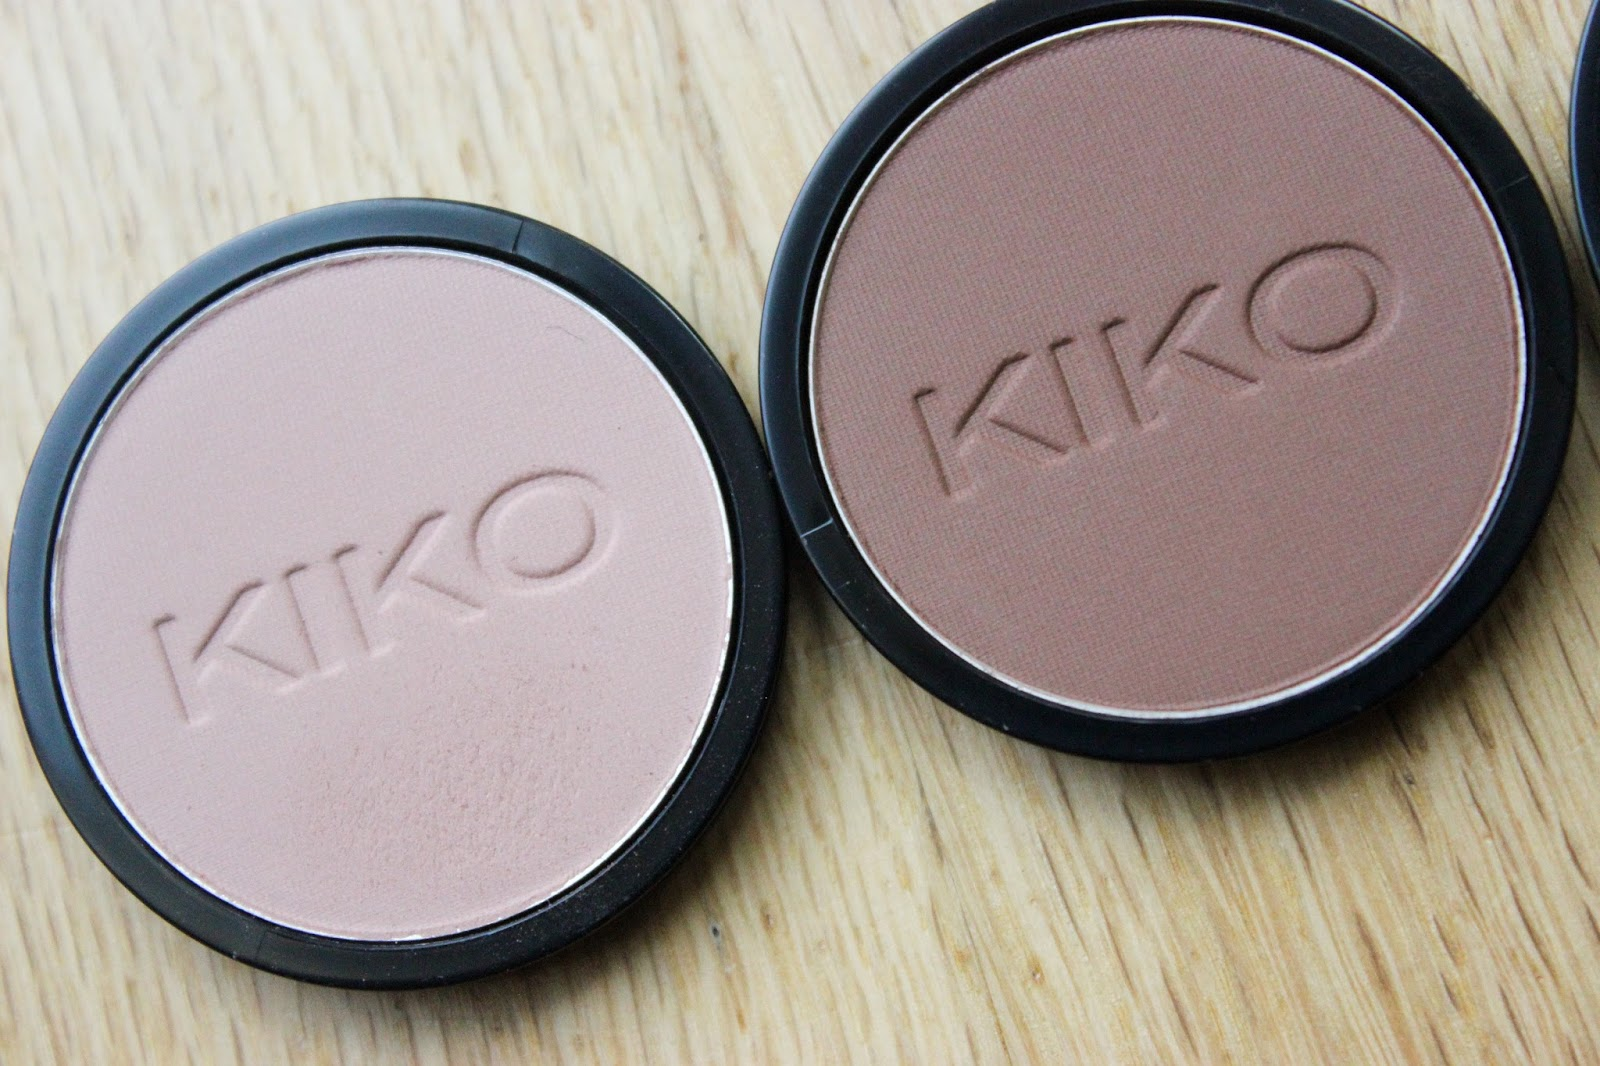 kiko infinity shadows discoveriesofself blog, nataliekayo, beauty blogger, swatches